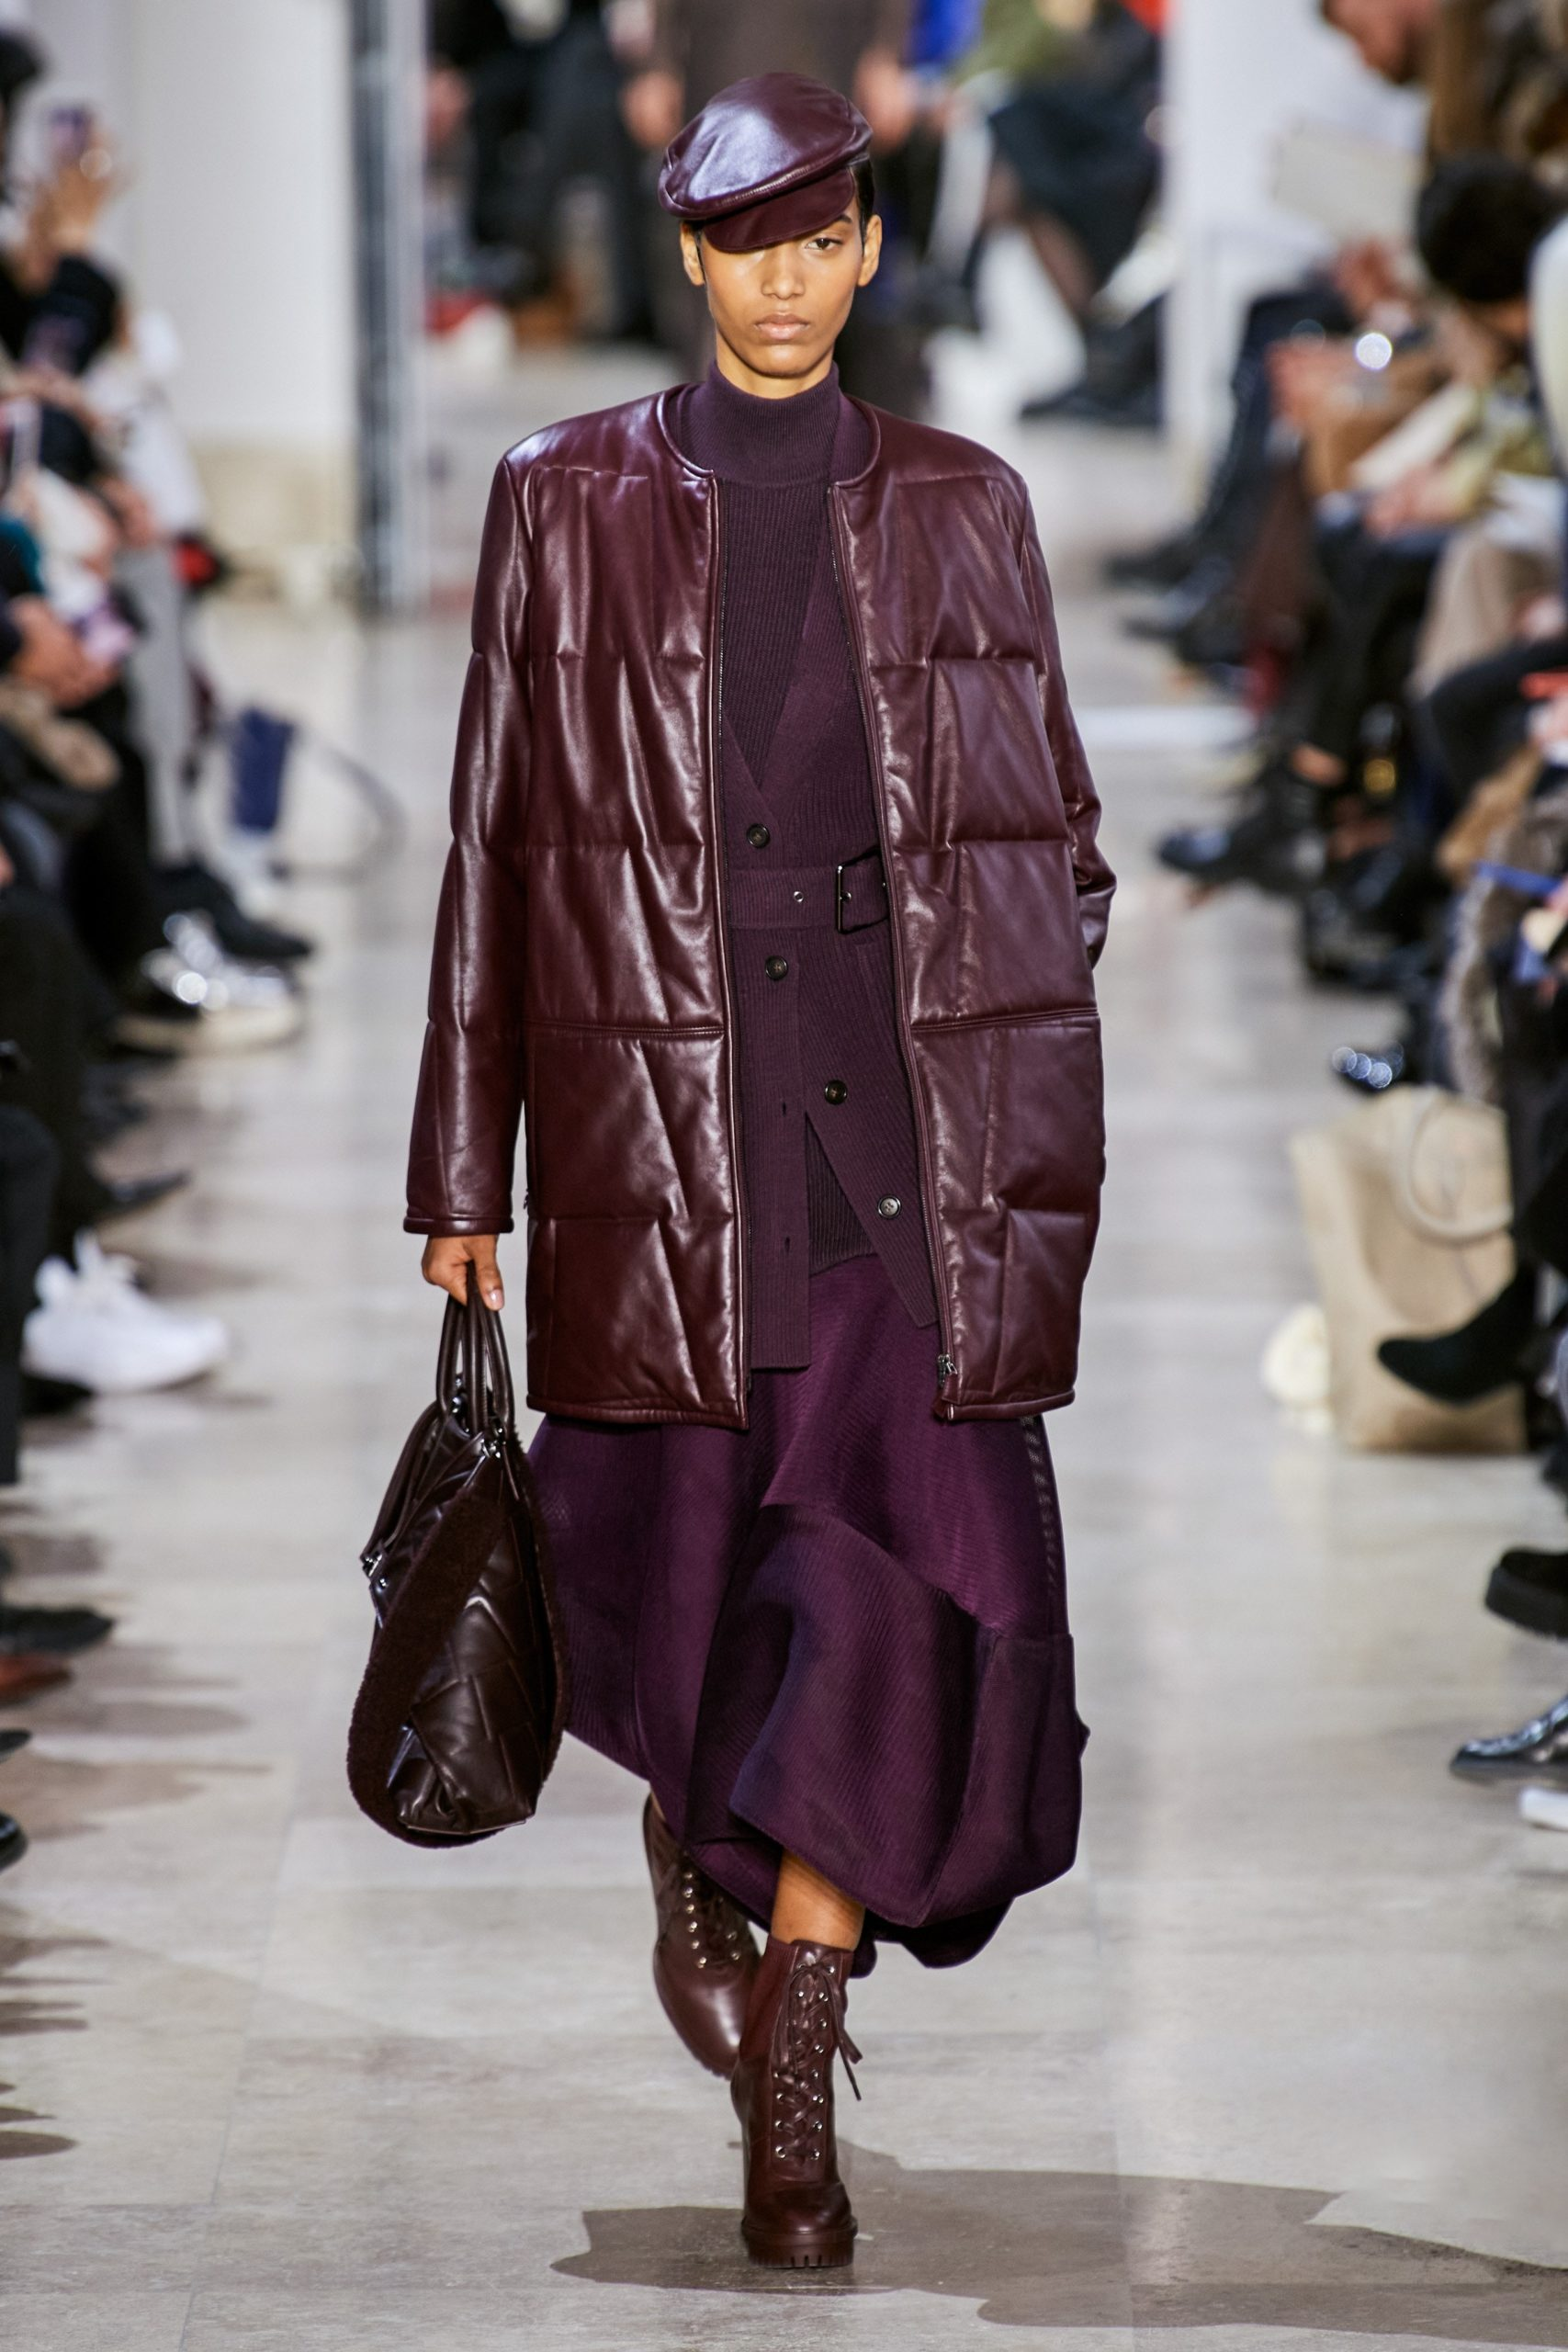 Akris Fall Winter 2020 trends runway coverage Ready To Wear Vogue eggplant monochrome